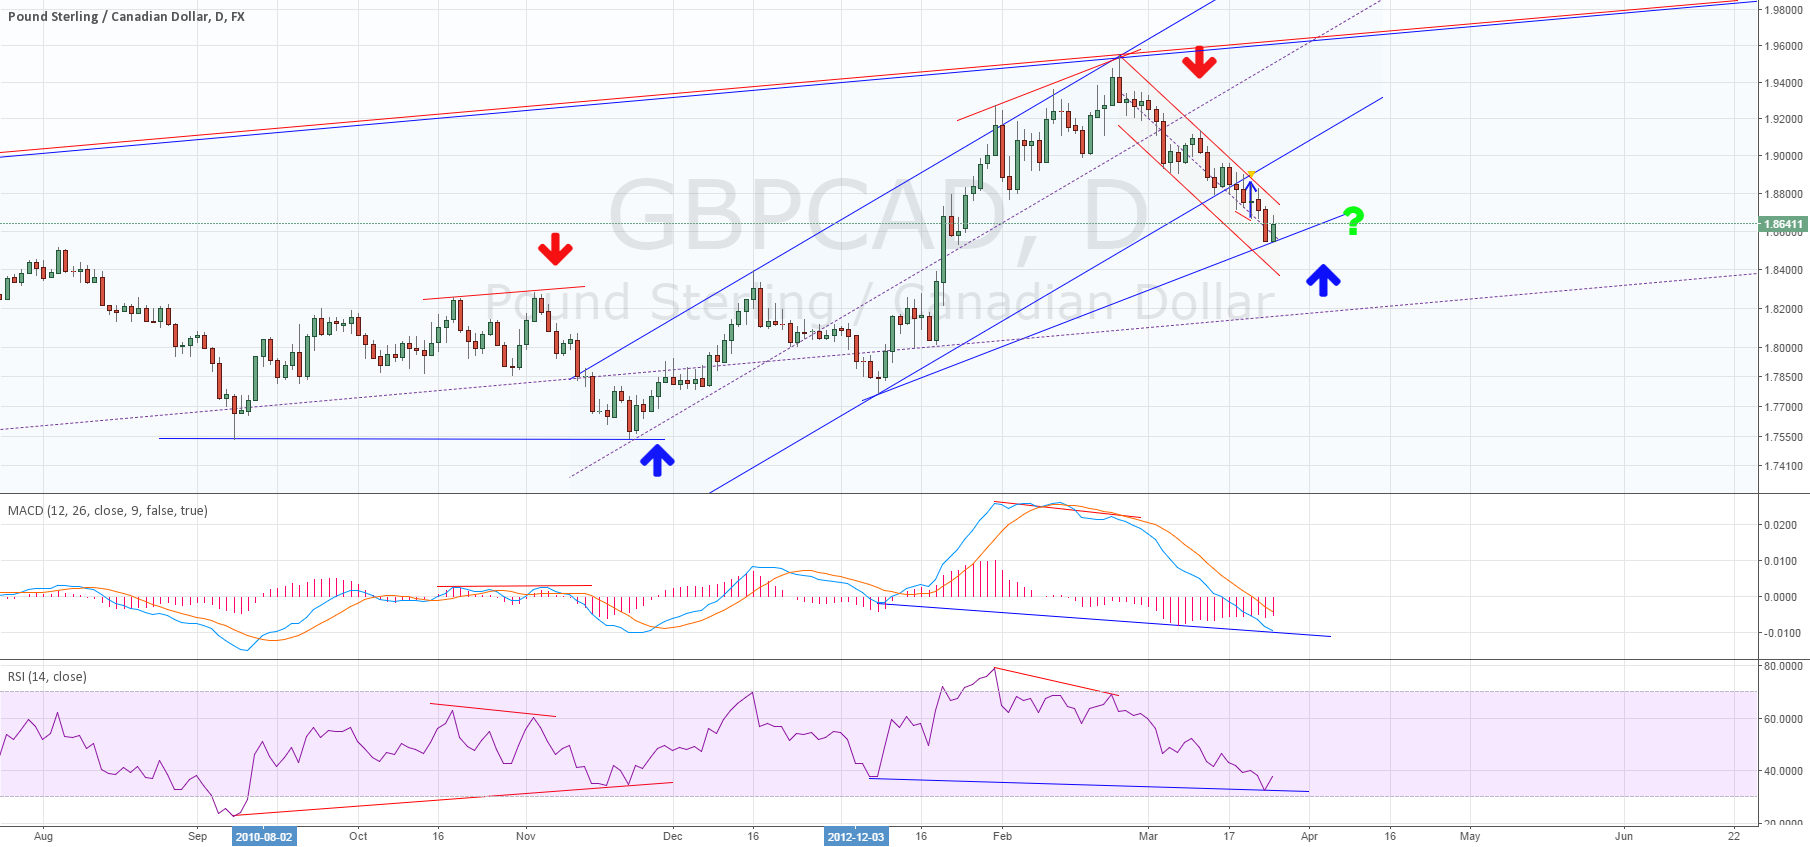 Daily for GBPCAD divergence ~